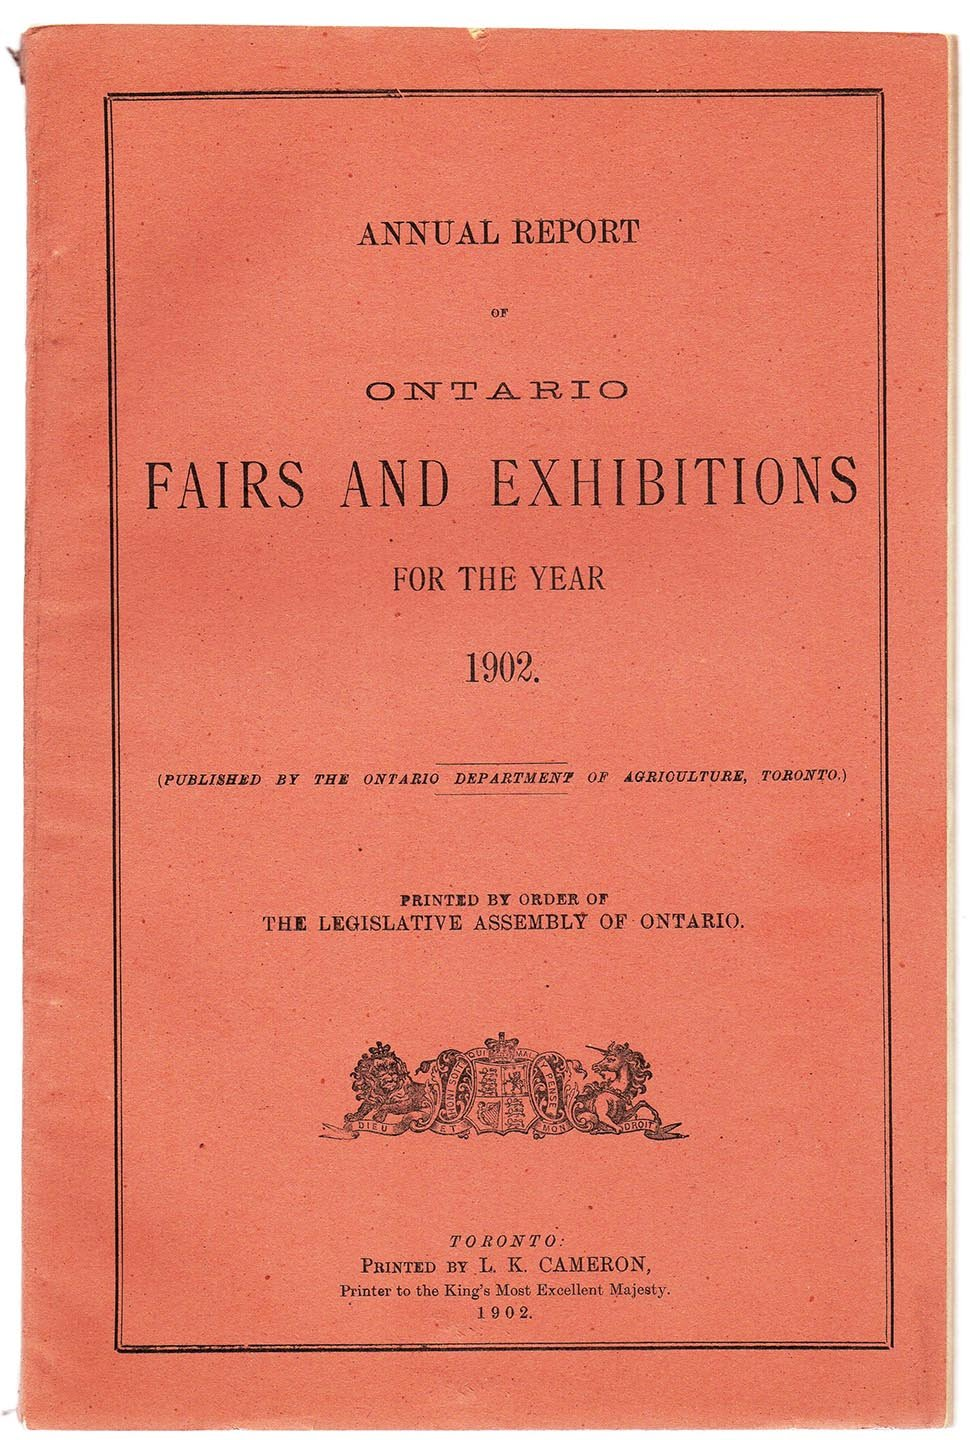 Annual Report of Ontario Fairs and Exhibitions for the Year 1902